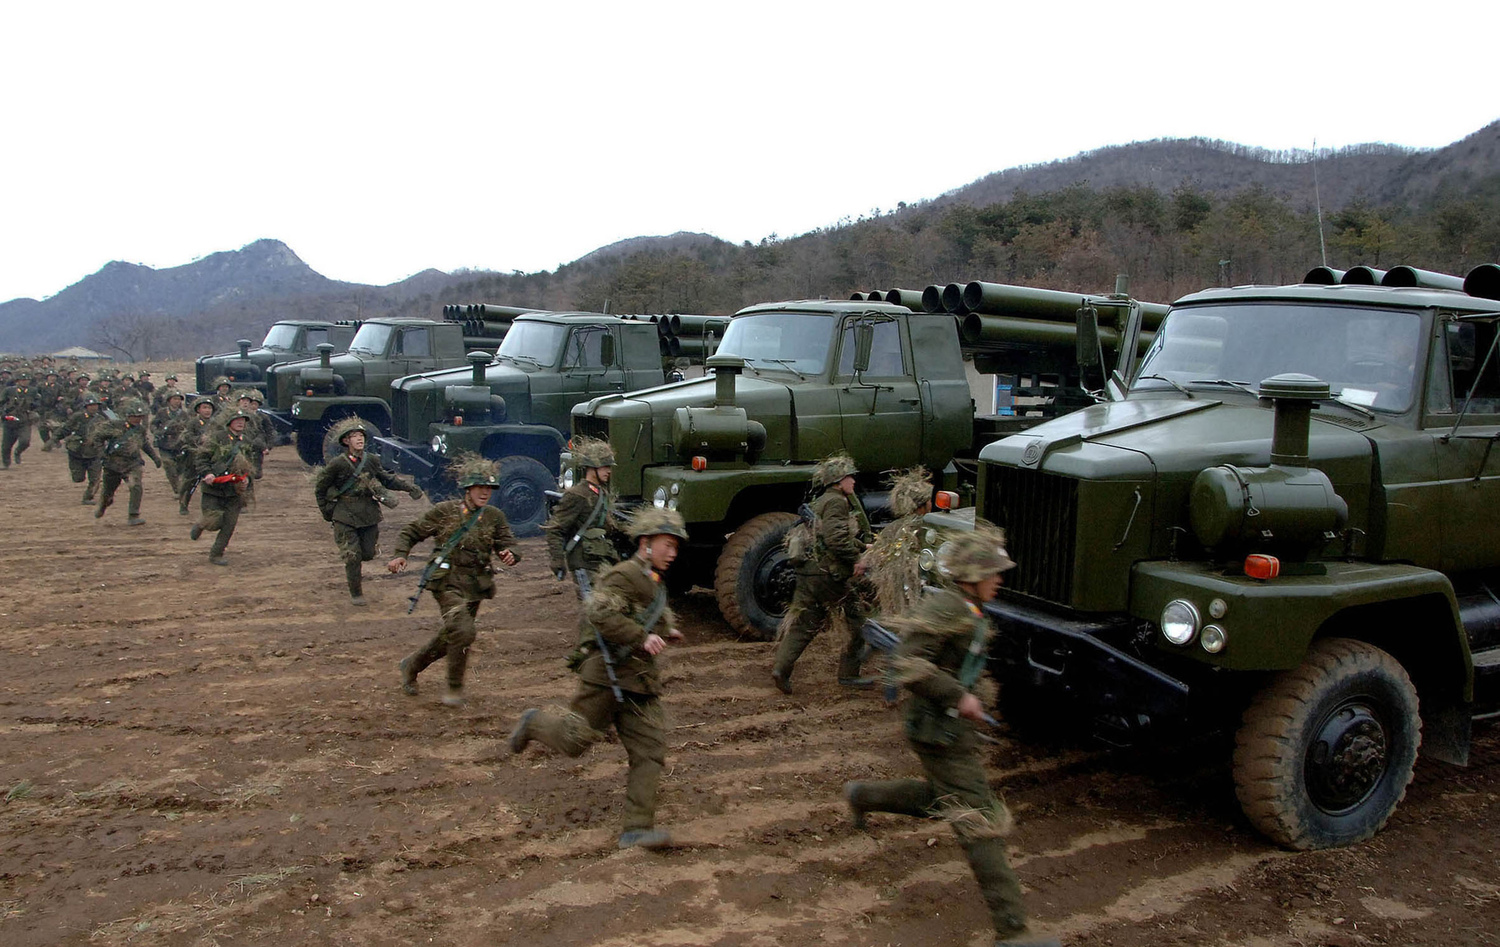 NKOREA-SKOREA-MILITARY-US